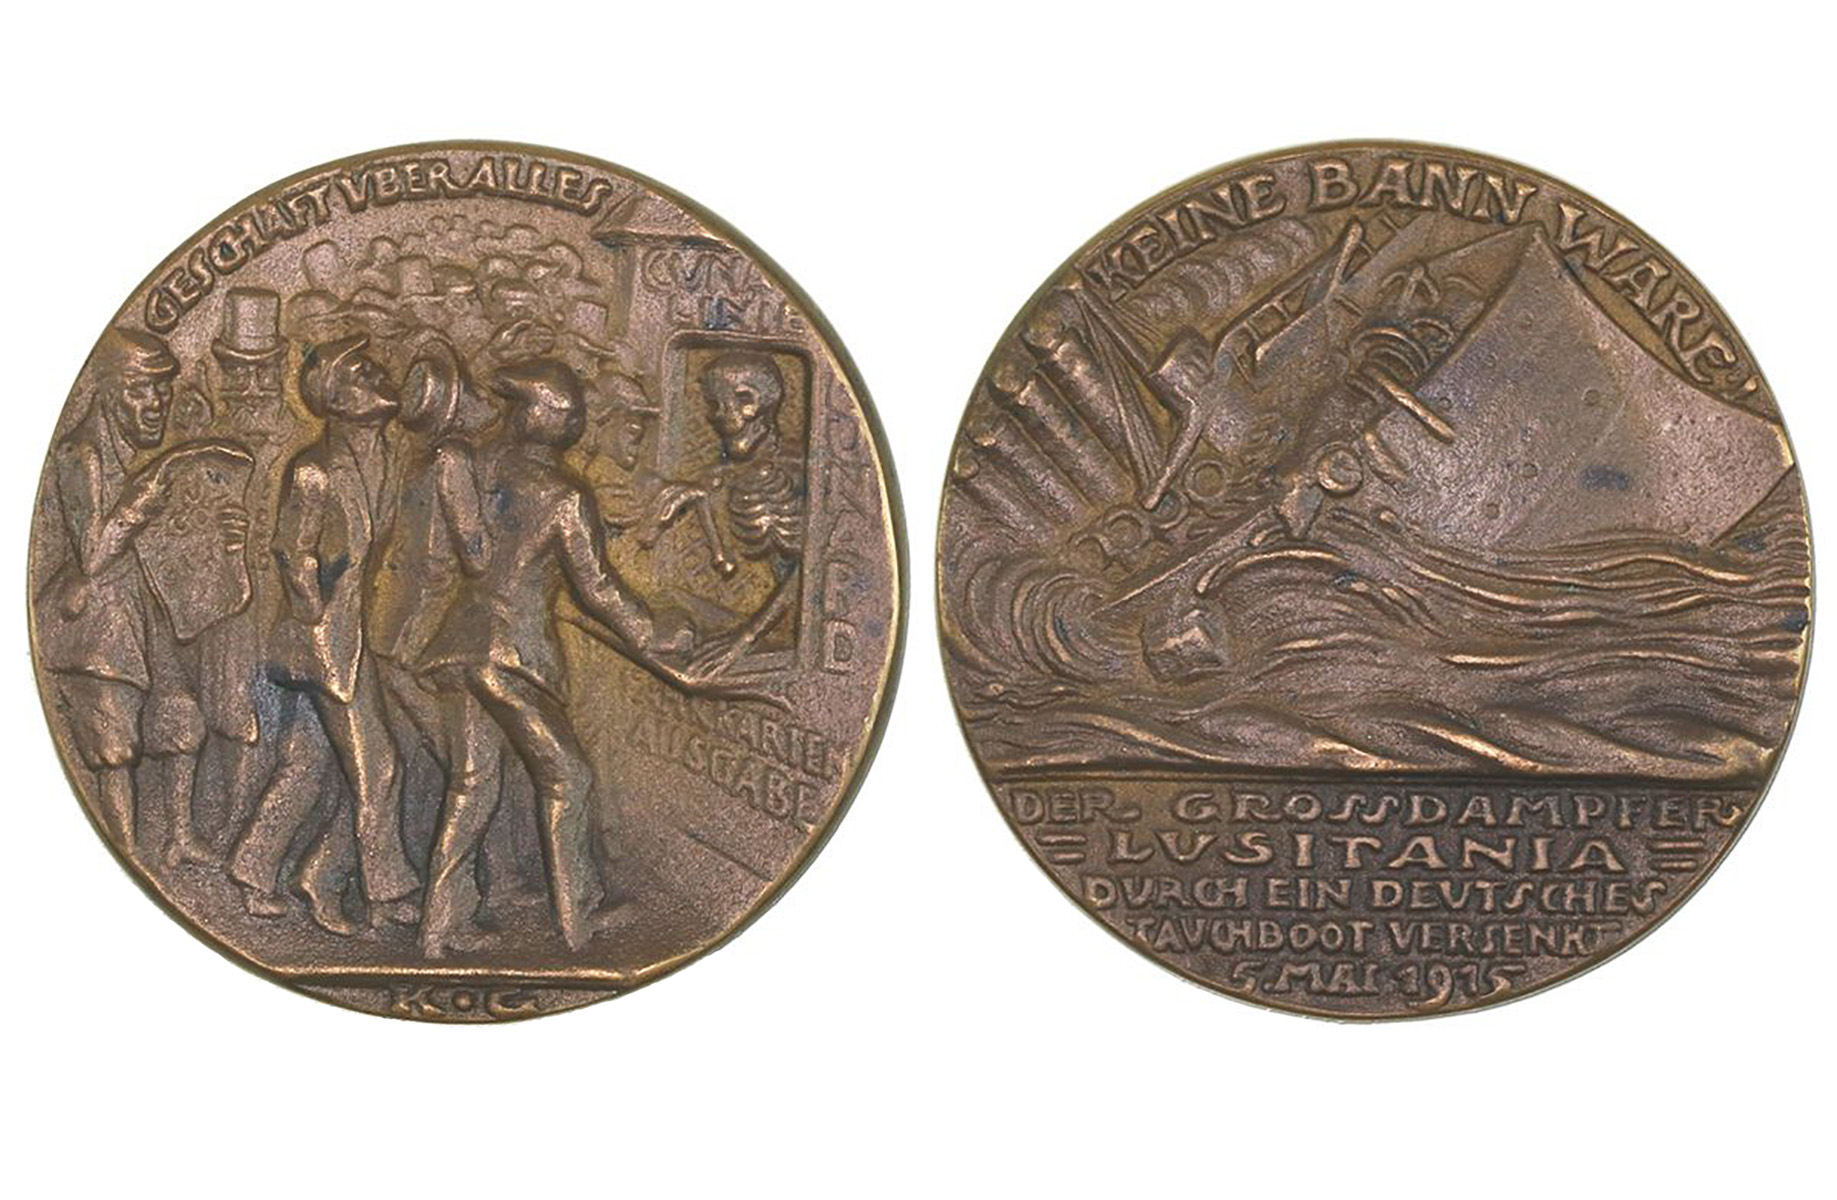 The first version of the German medal